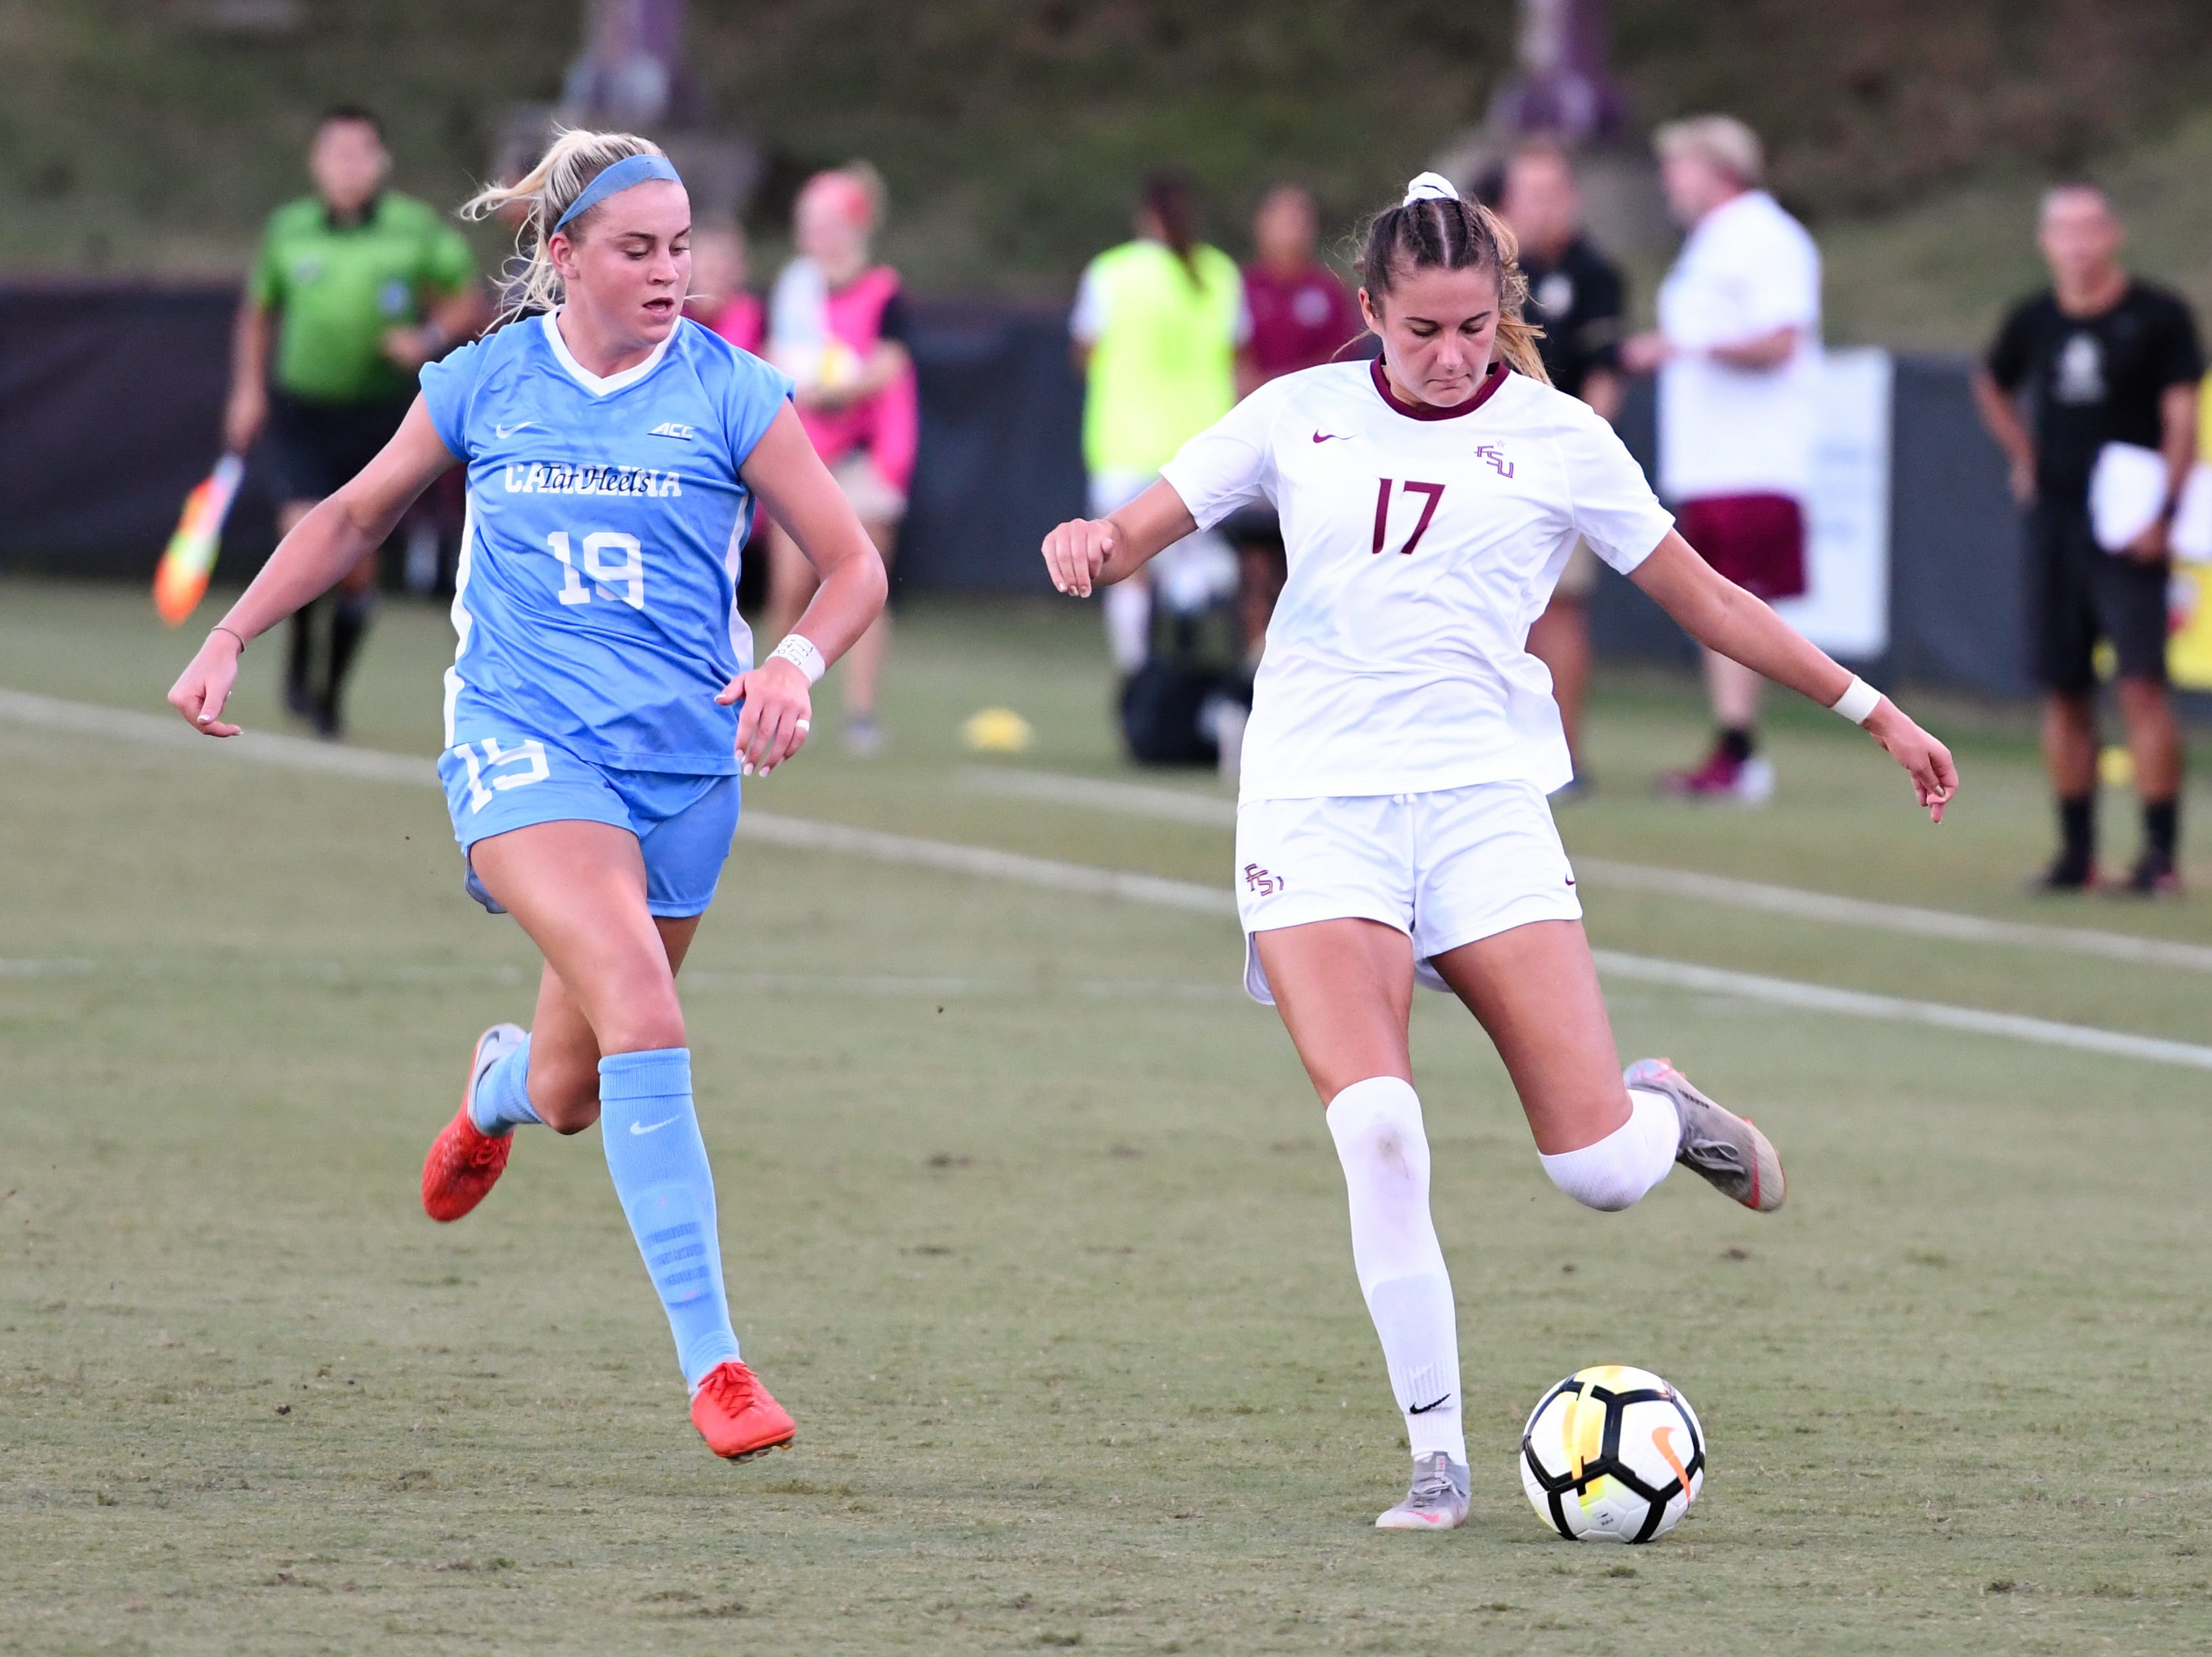 FSU redshirt sophomore defender Malia Berkely (17) passing the ball towards her teammates during the first half of FSU's game against UNC on September 14th at the Seminole Soccer Complex.